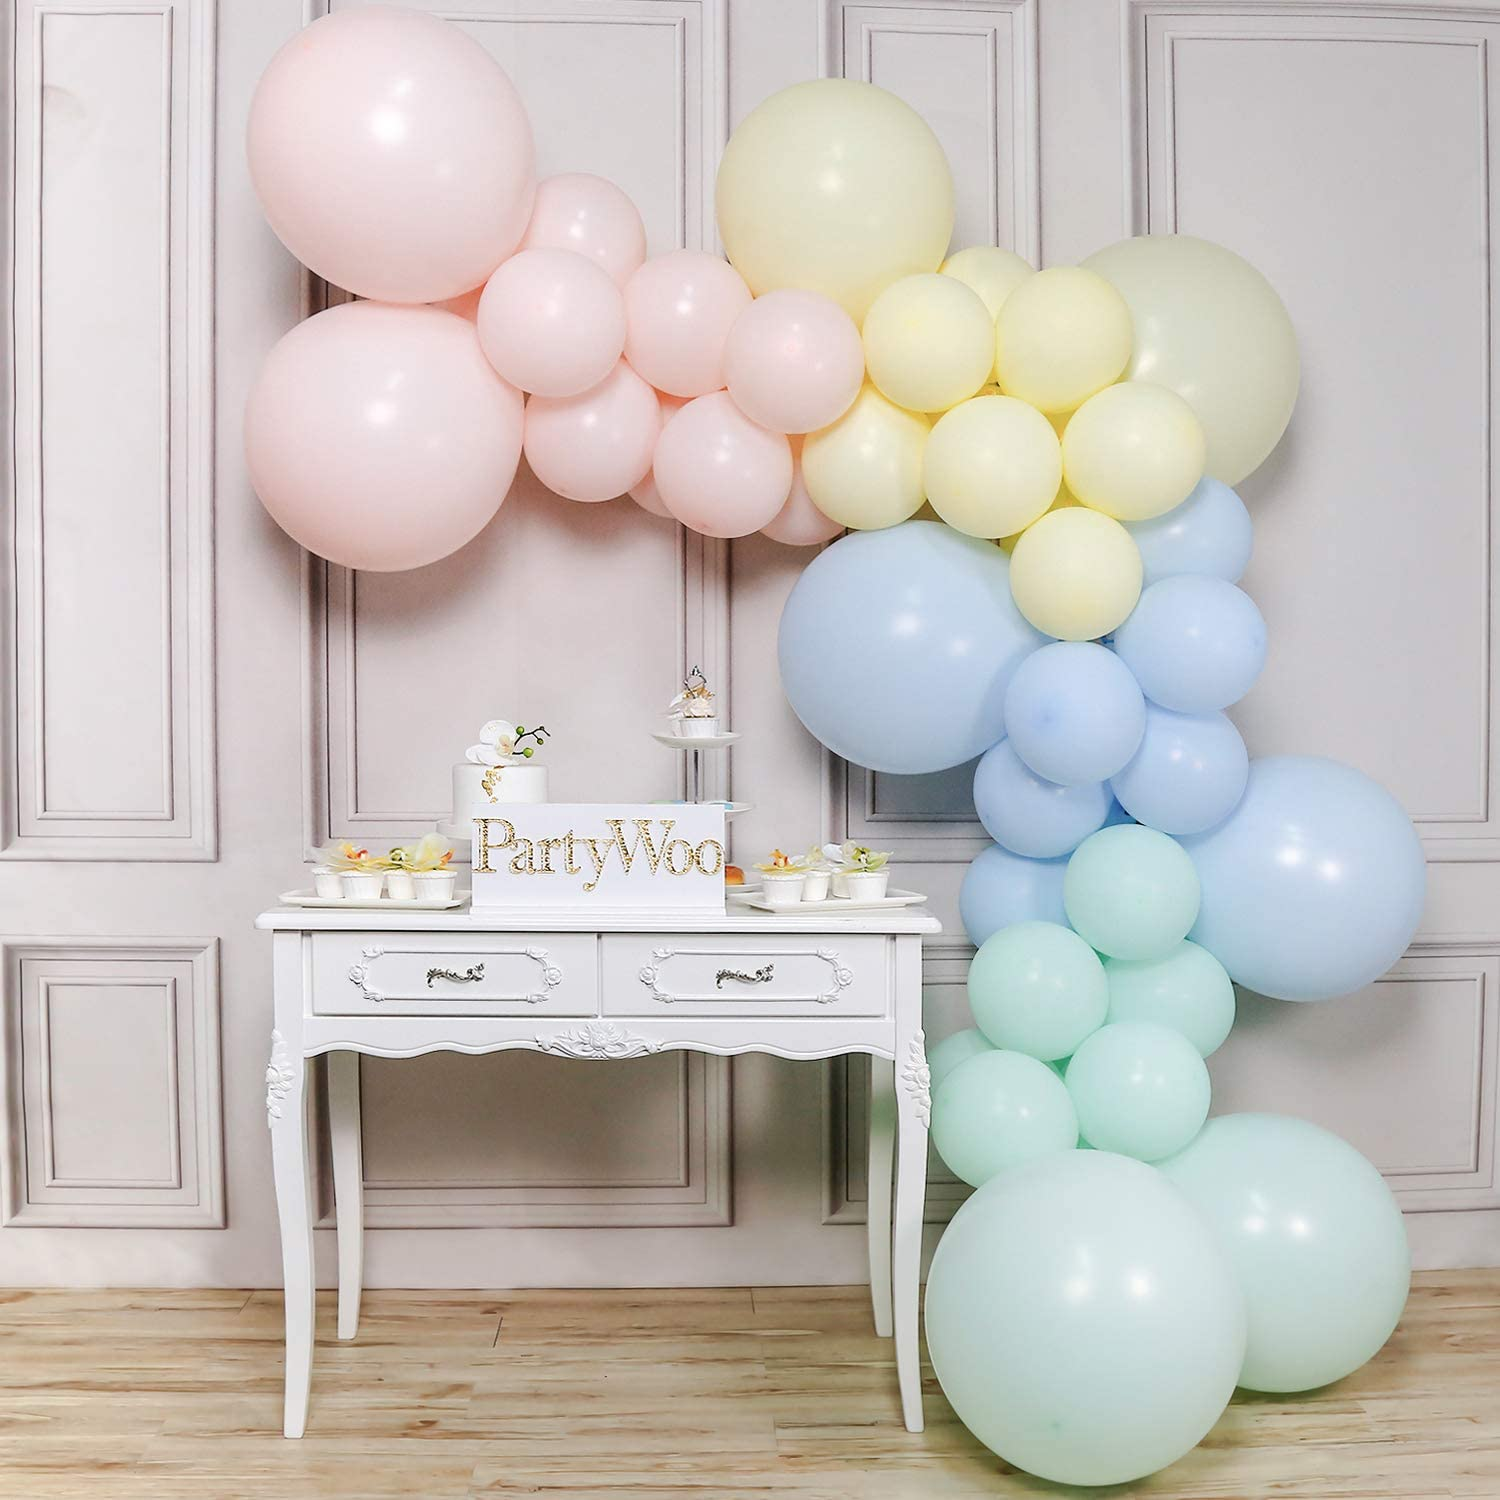 PartyWoo Pastel Balloons, Pastel Pink Balloons, Pastel Blue Balloons, Pastel Yellow Balloons, Mint Green Balloons, Giant Balloons Pastel for Pastel Party Decorations, Pastel Rainbow Party Supplies